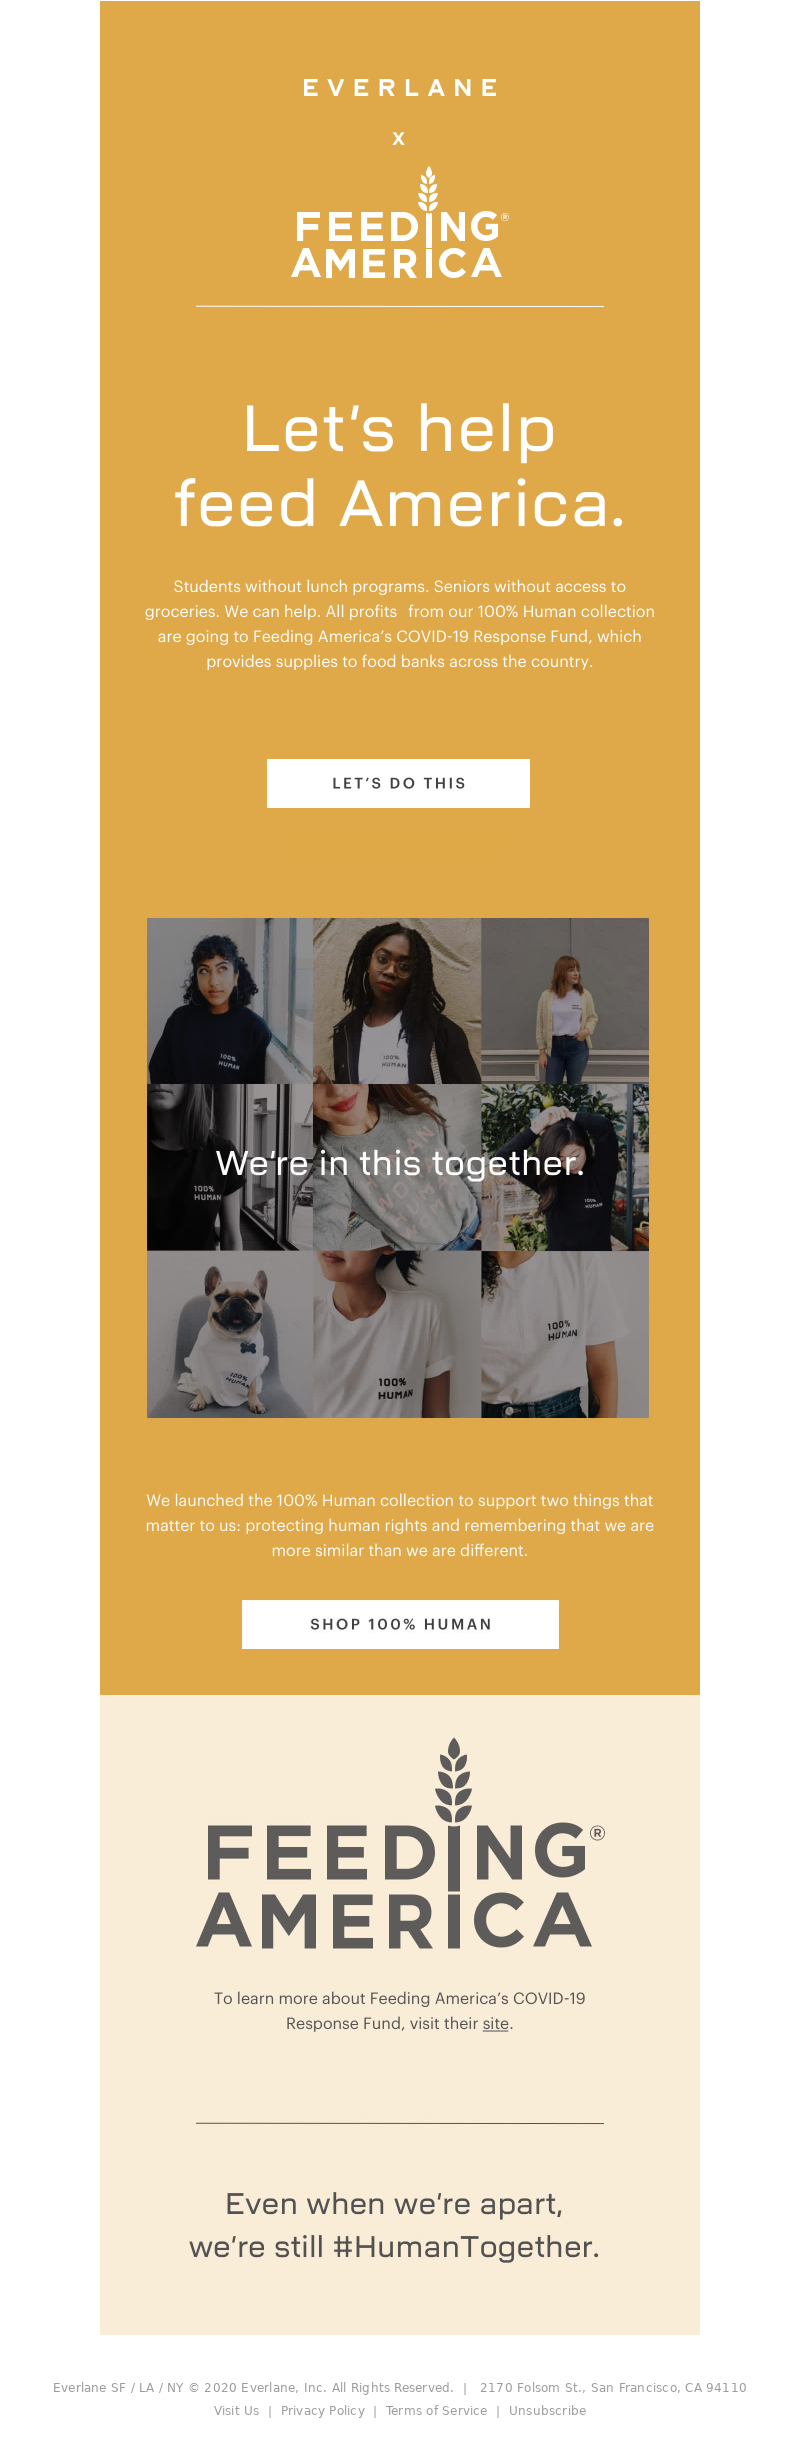 Everlane - Let's Help Our Fellow Humans